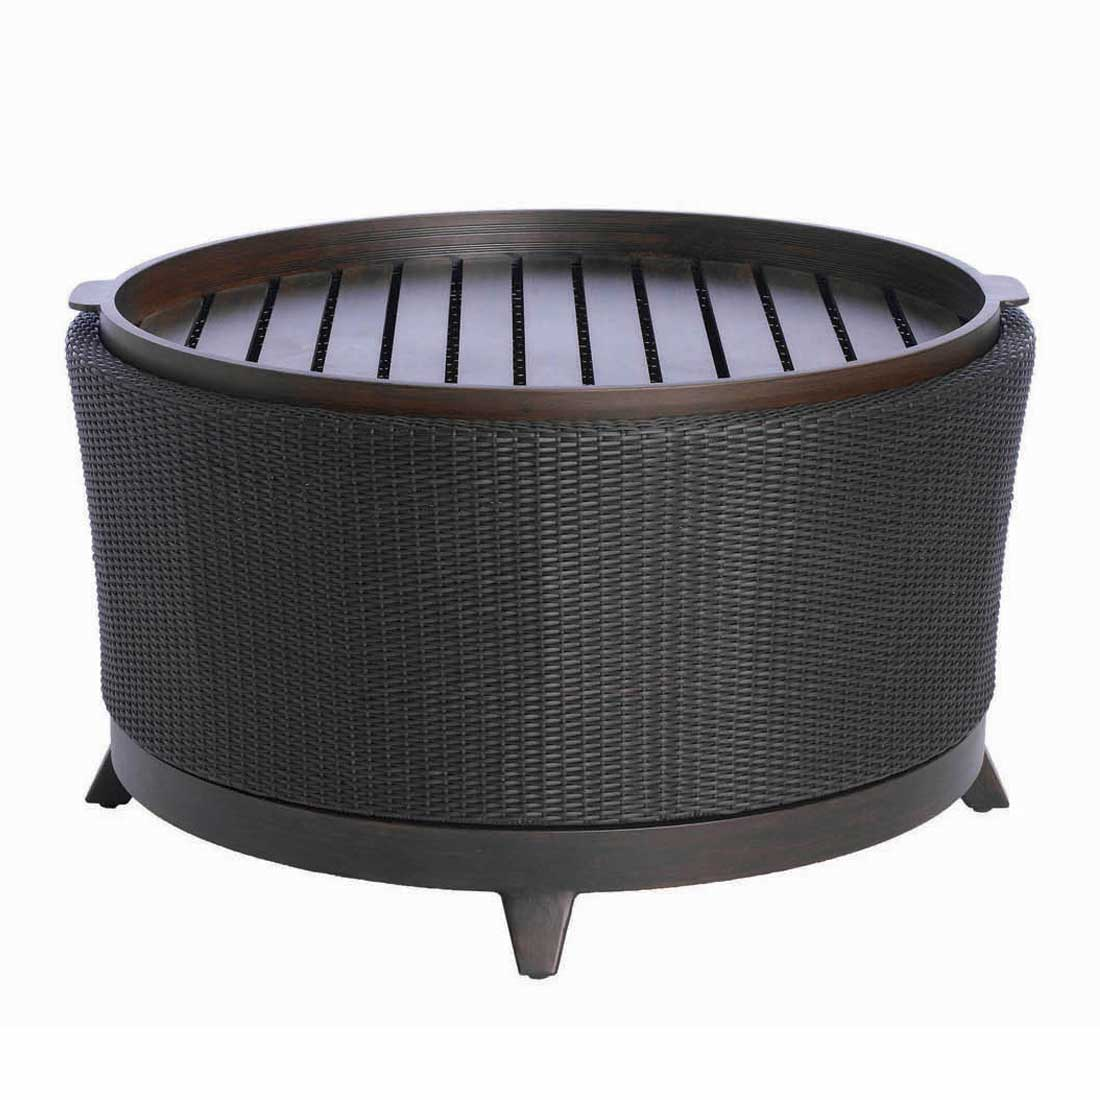 Halo outdoor round coffee table Round espresso coffee table